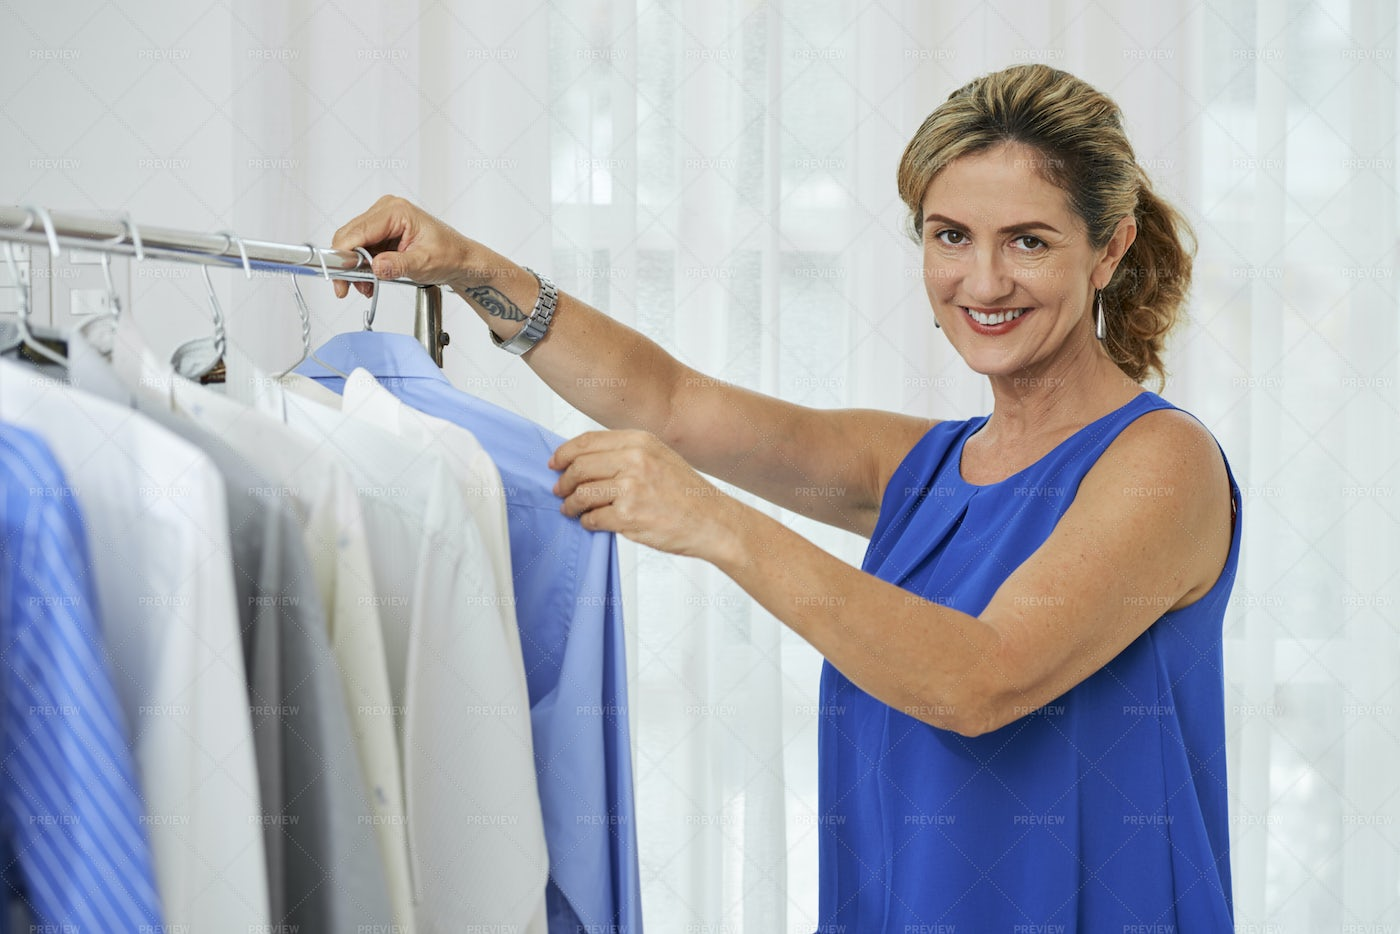 Woman Working In Laundry: Stock Photos